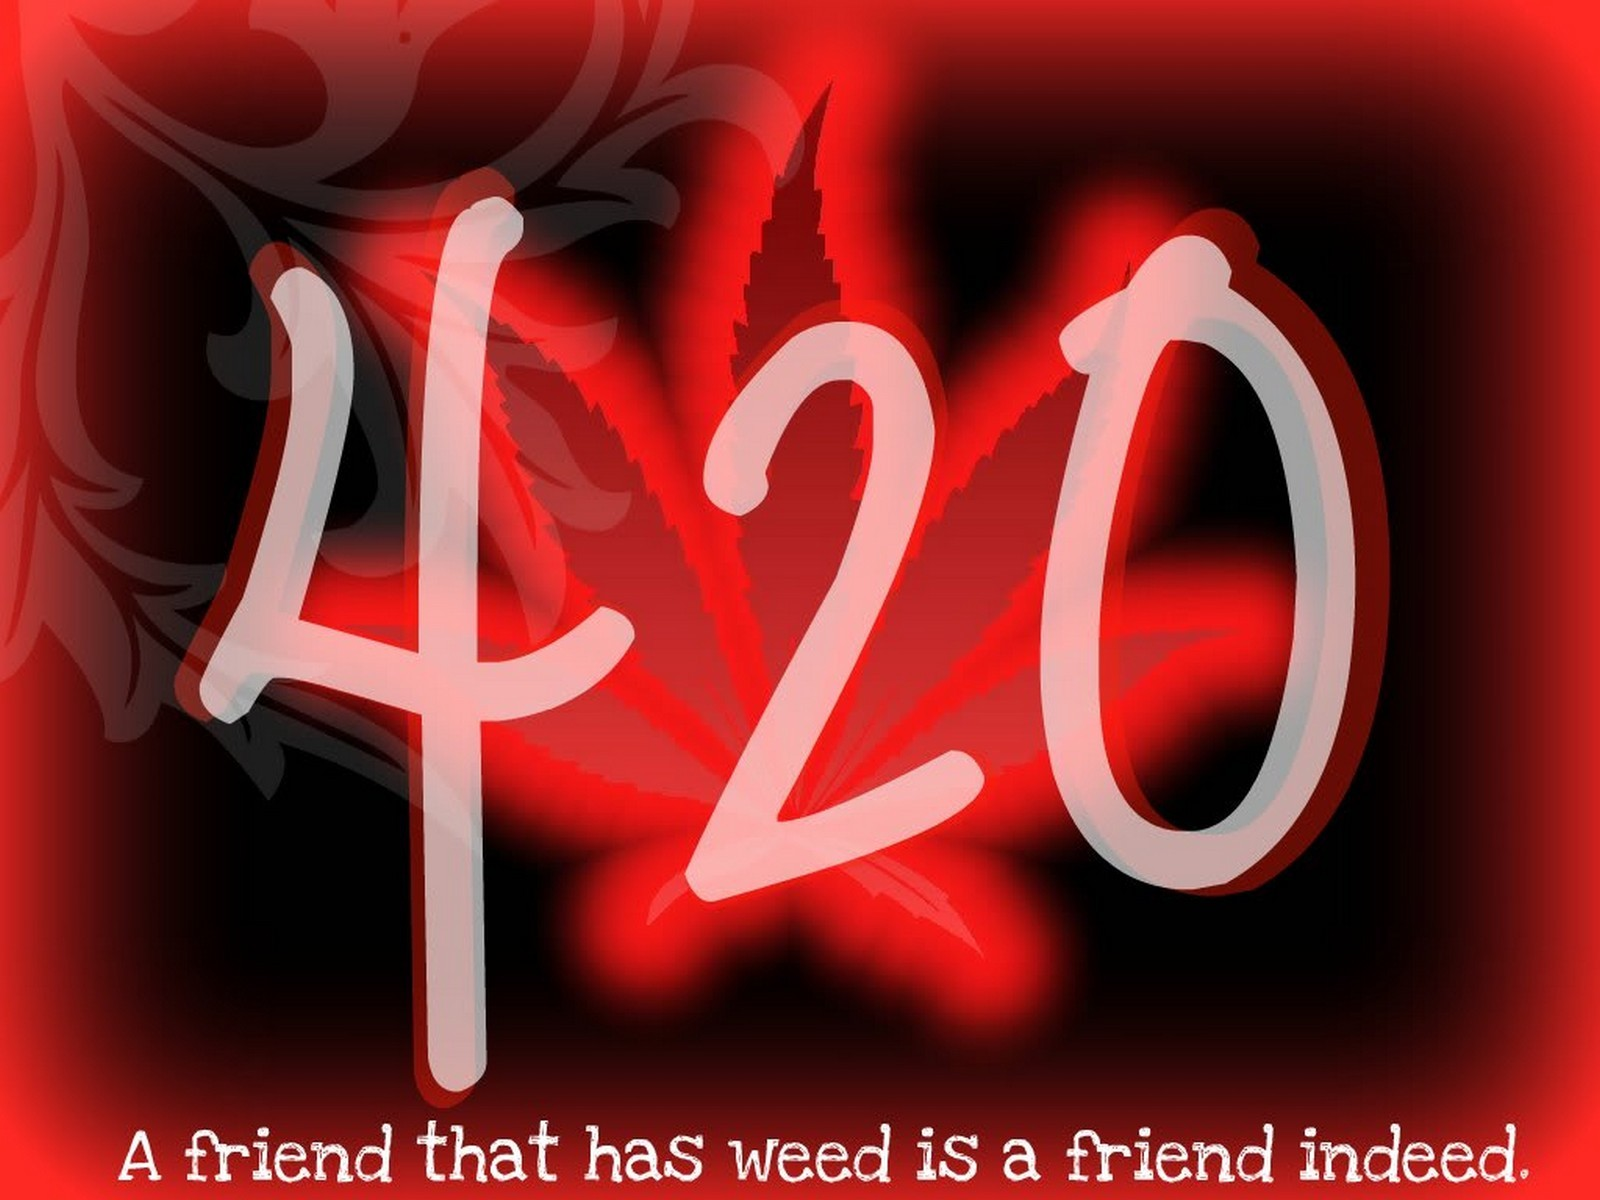 Sick Wallpapers For Iphone 5 Friends With Weed Quotes To Help You Through The Day